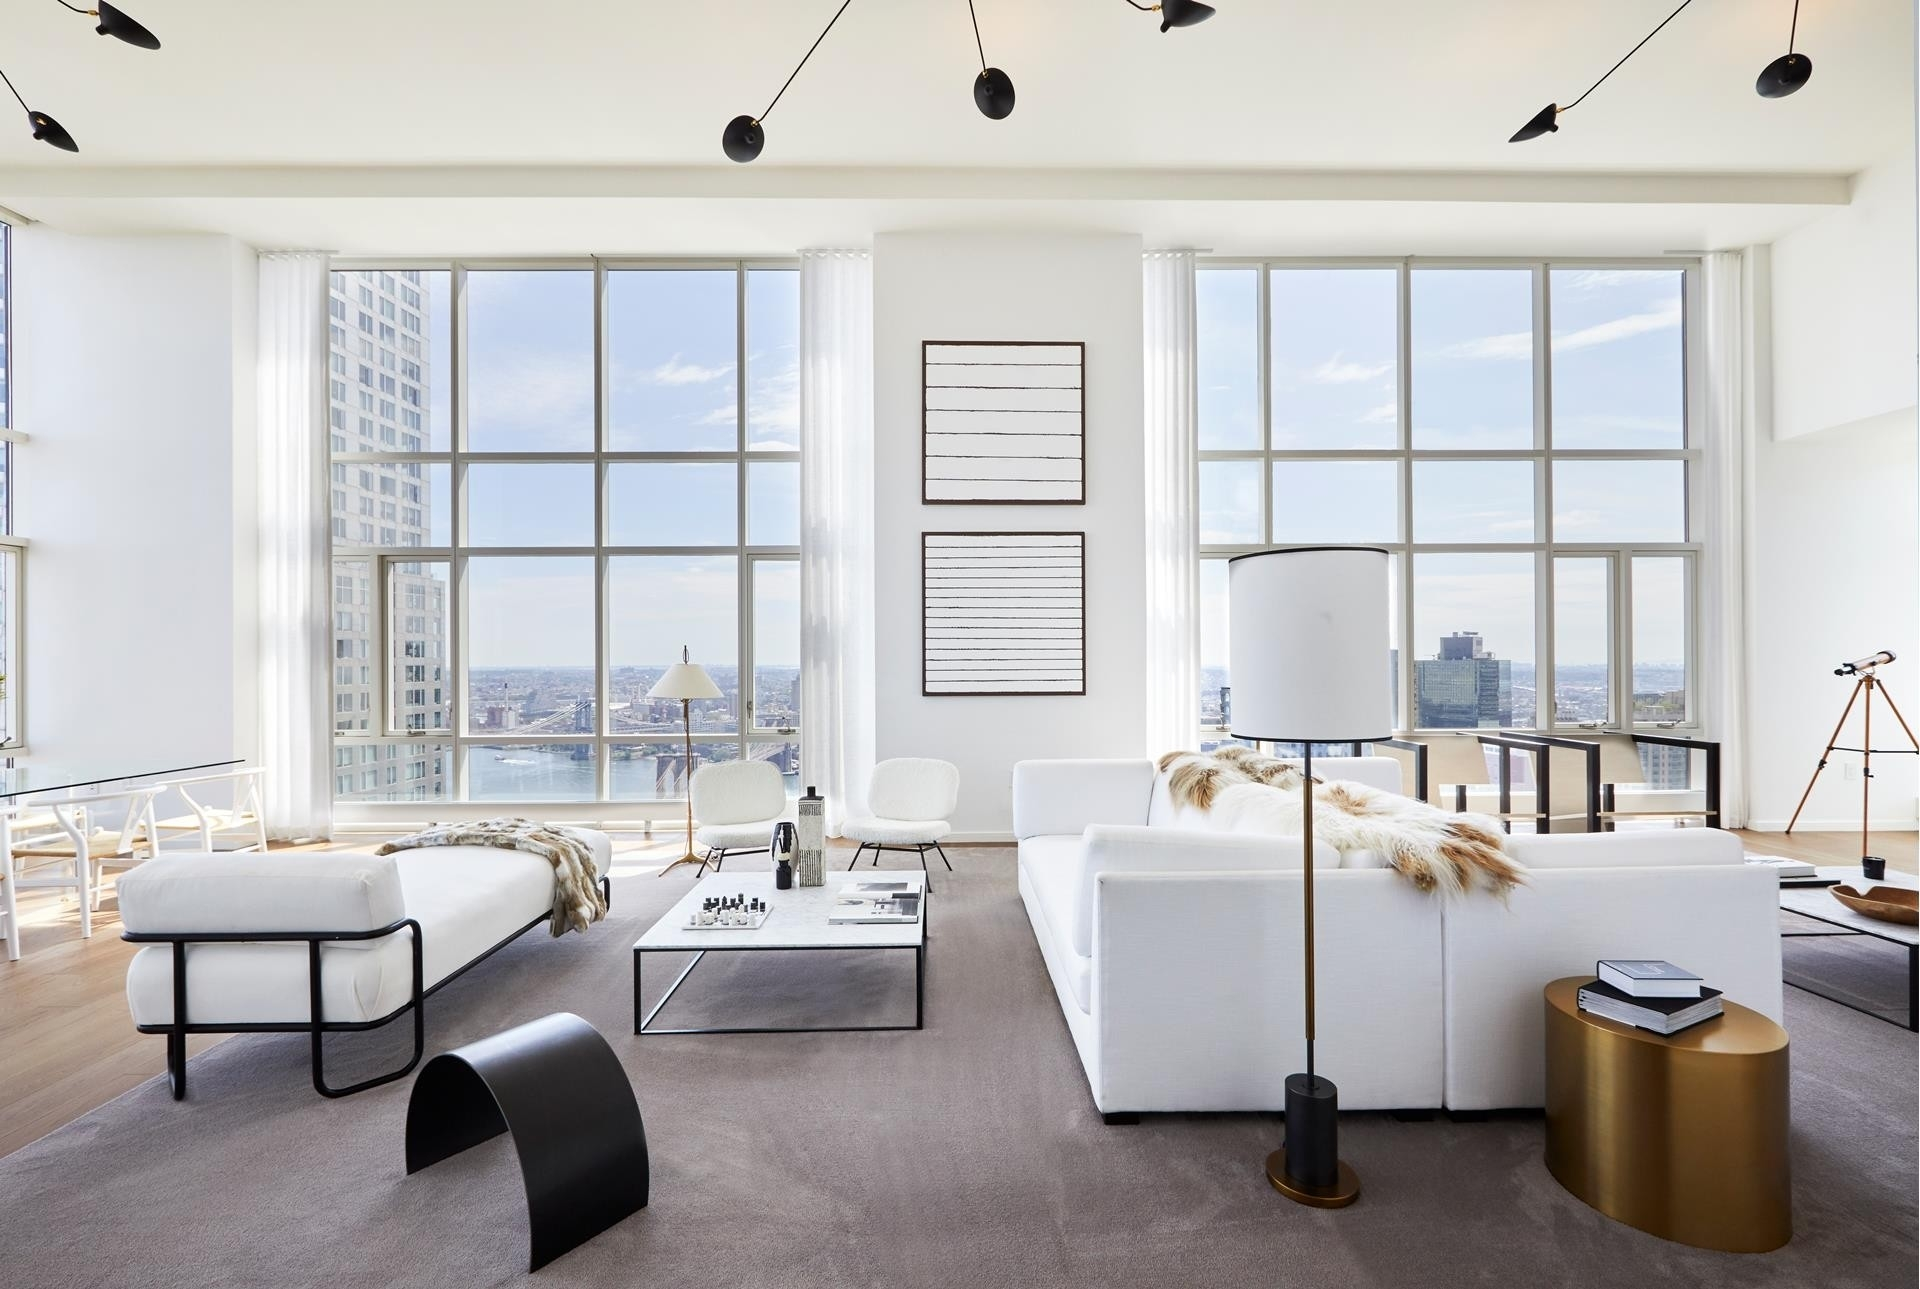 14. Condominiums for Sale at The Beekman Residences, 5 Beekman St, PH Financial District, New York, NY 10038